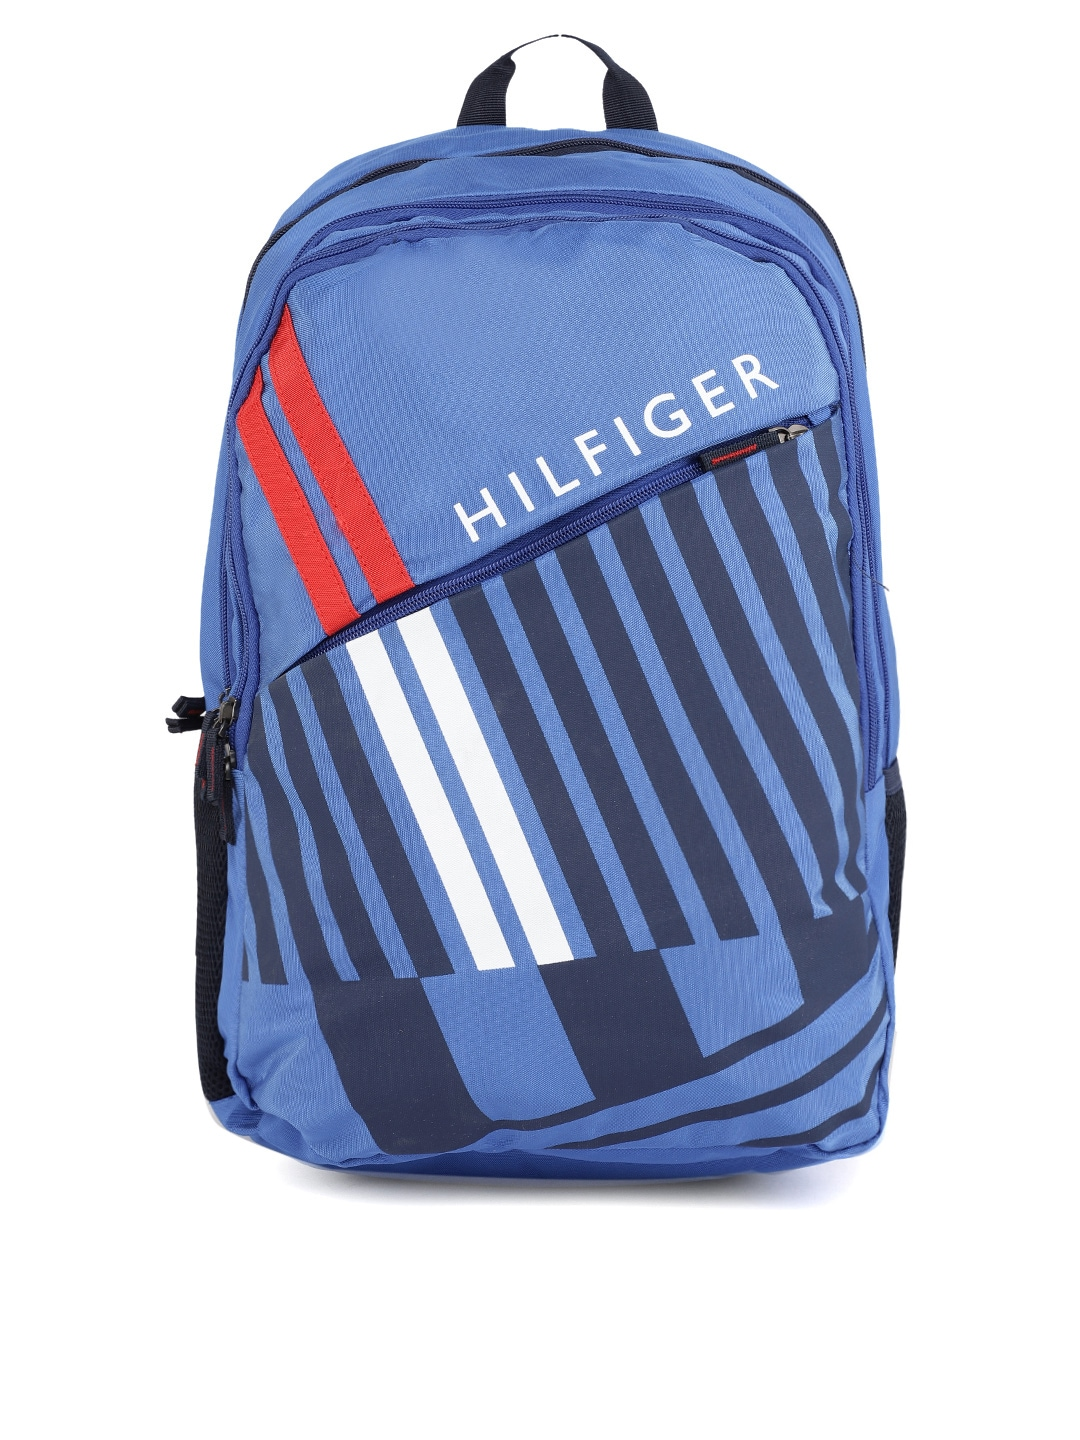 4282975baf7 College Bags - Buy College Bags online in India